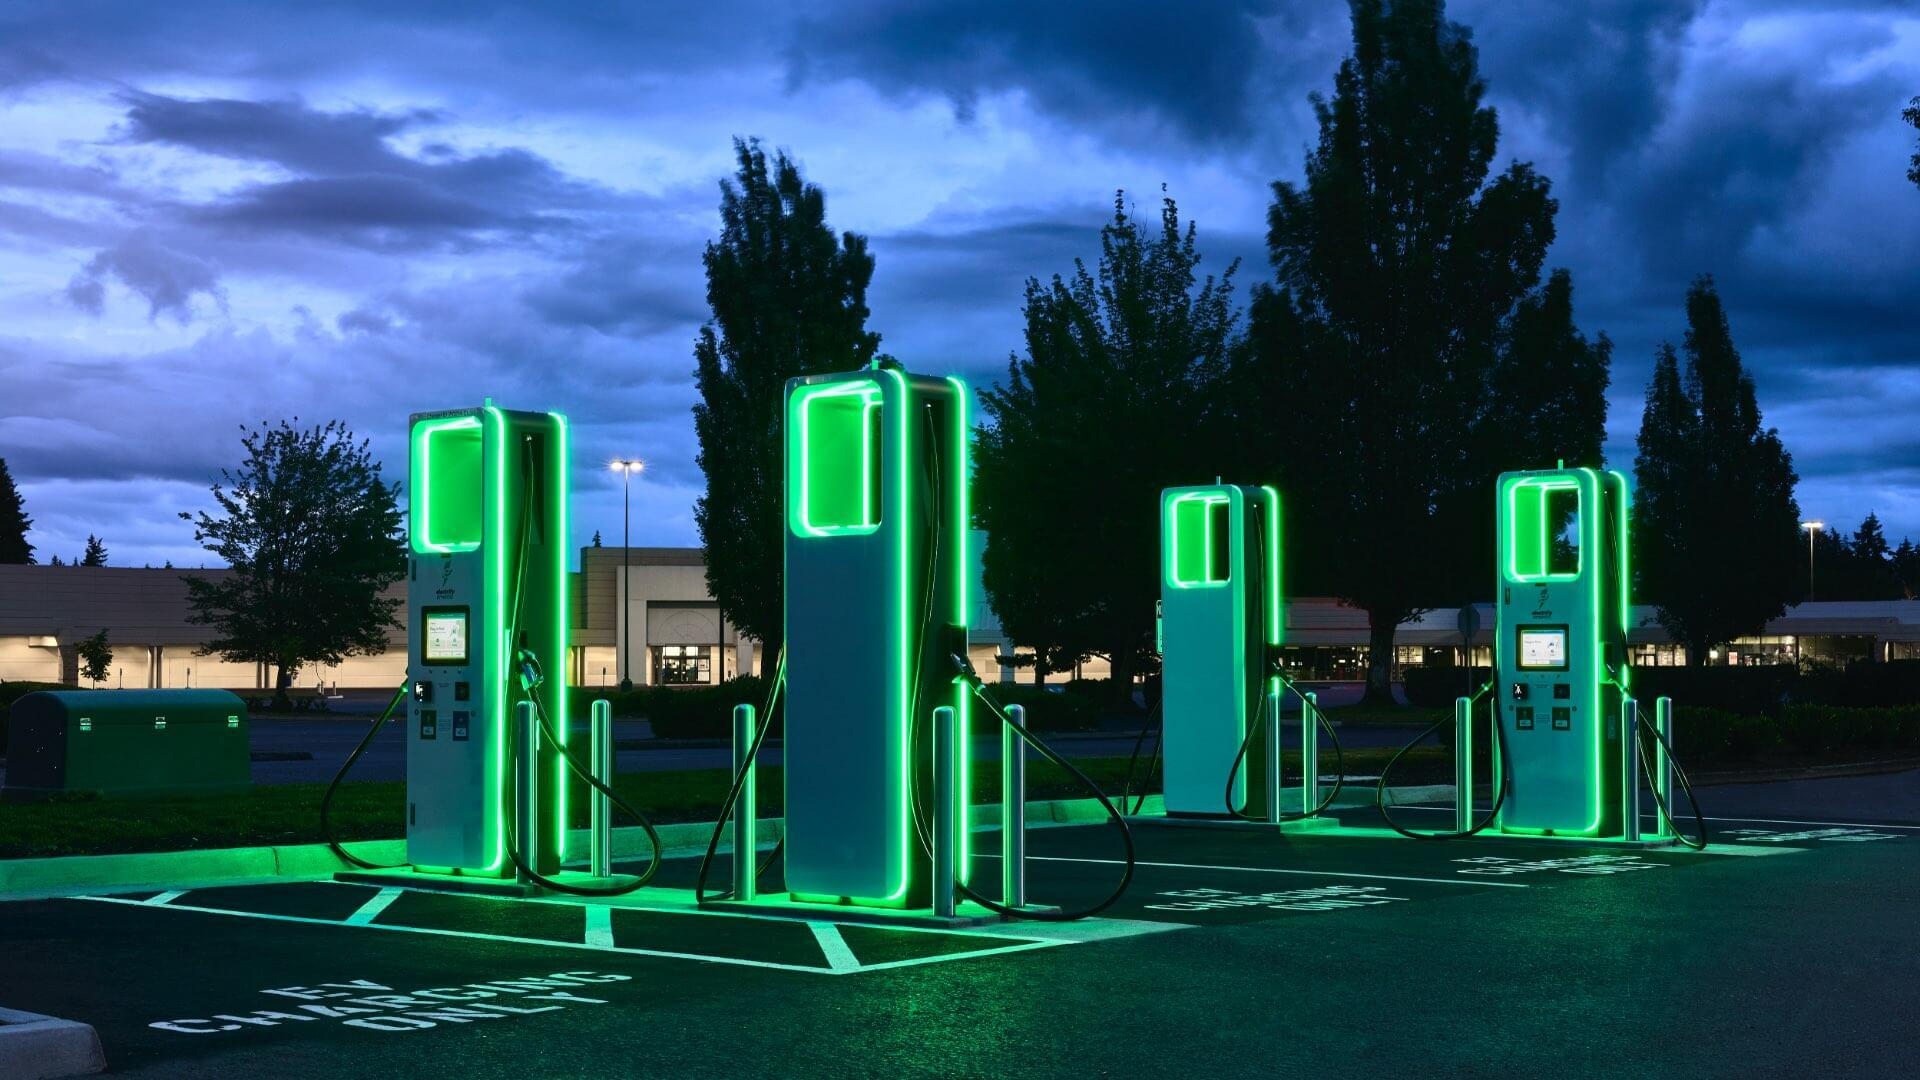 Finished project where electric car charges were installed, now fully illuminated at dusk